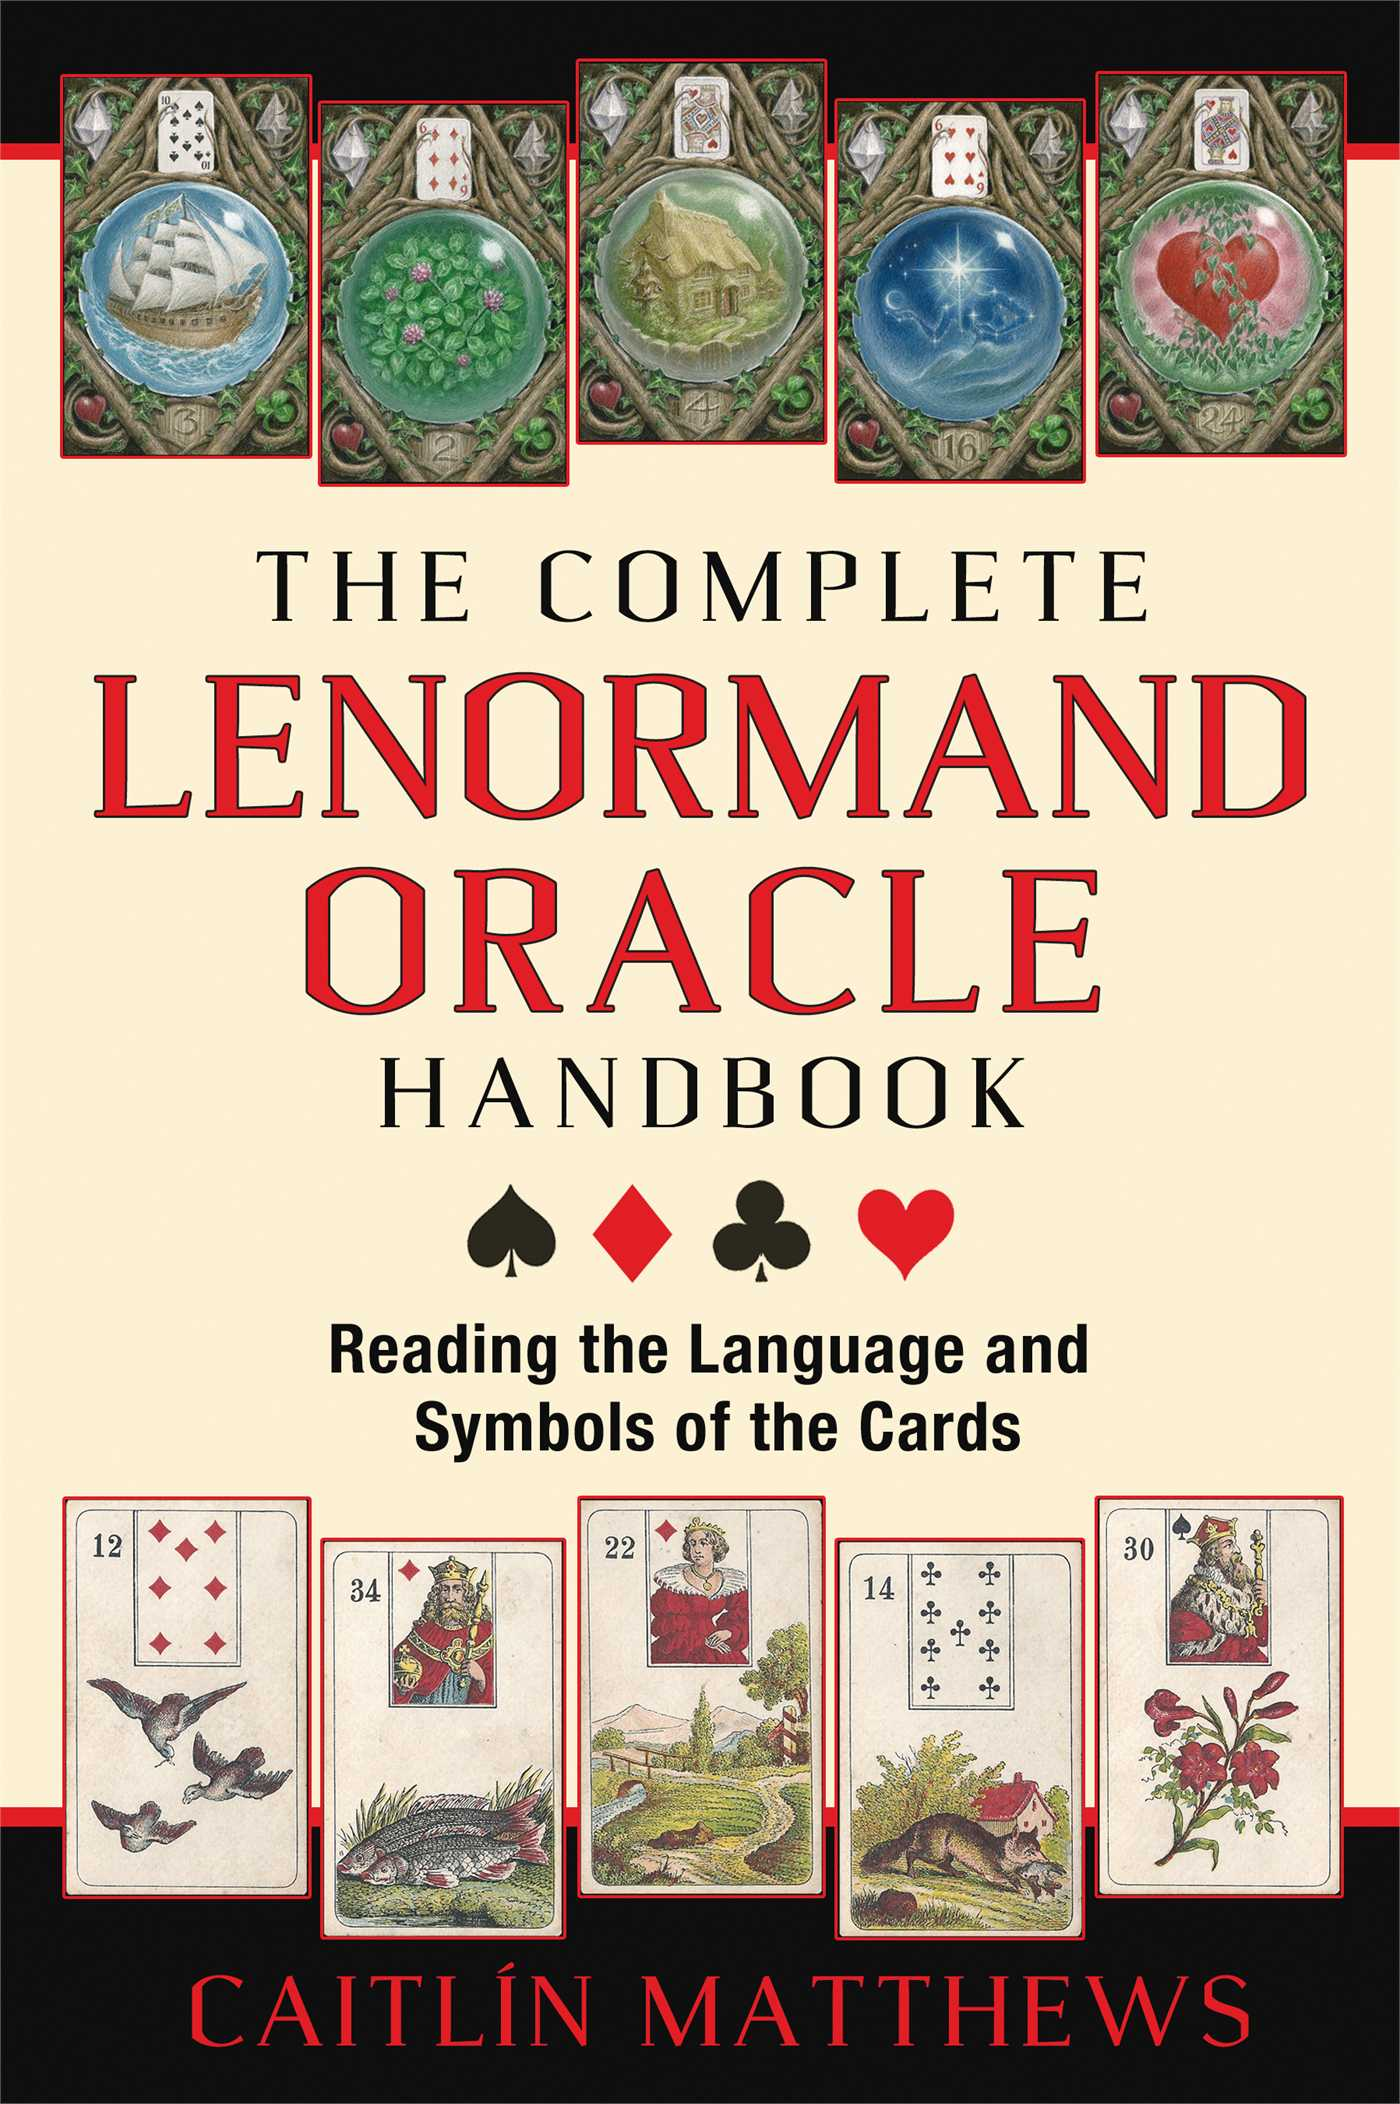 The Complete Lenormand Oracle Handbook Book By Caitln Matthews